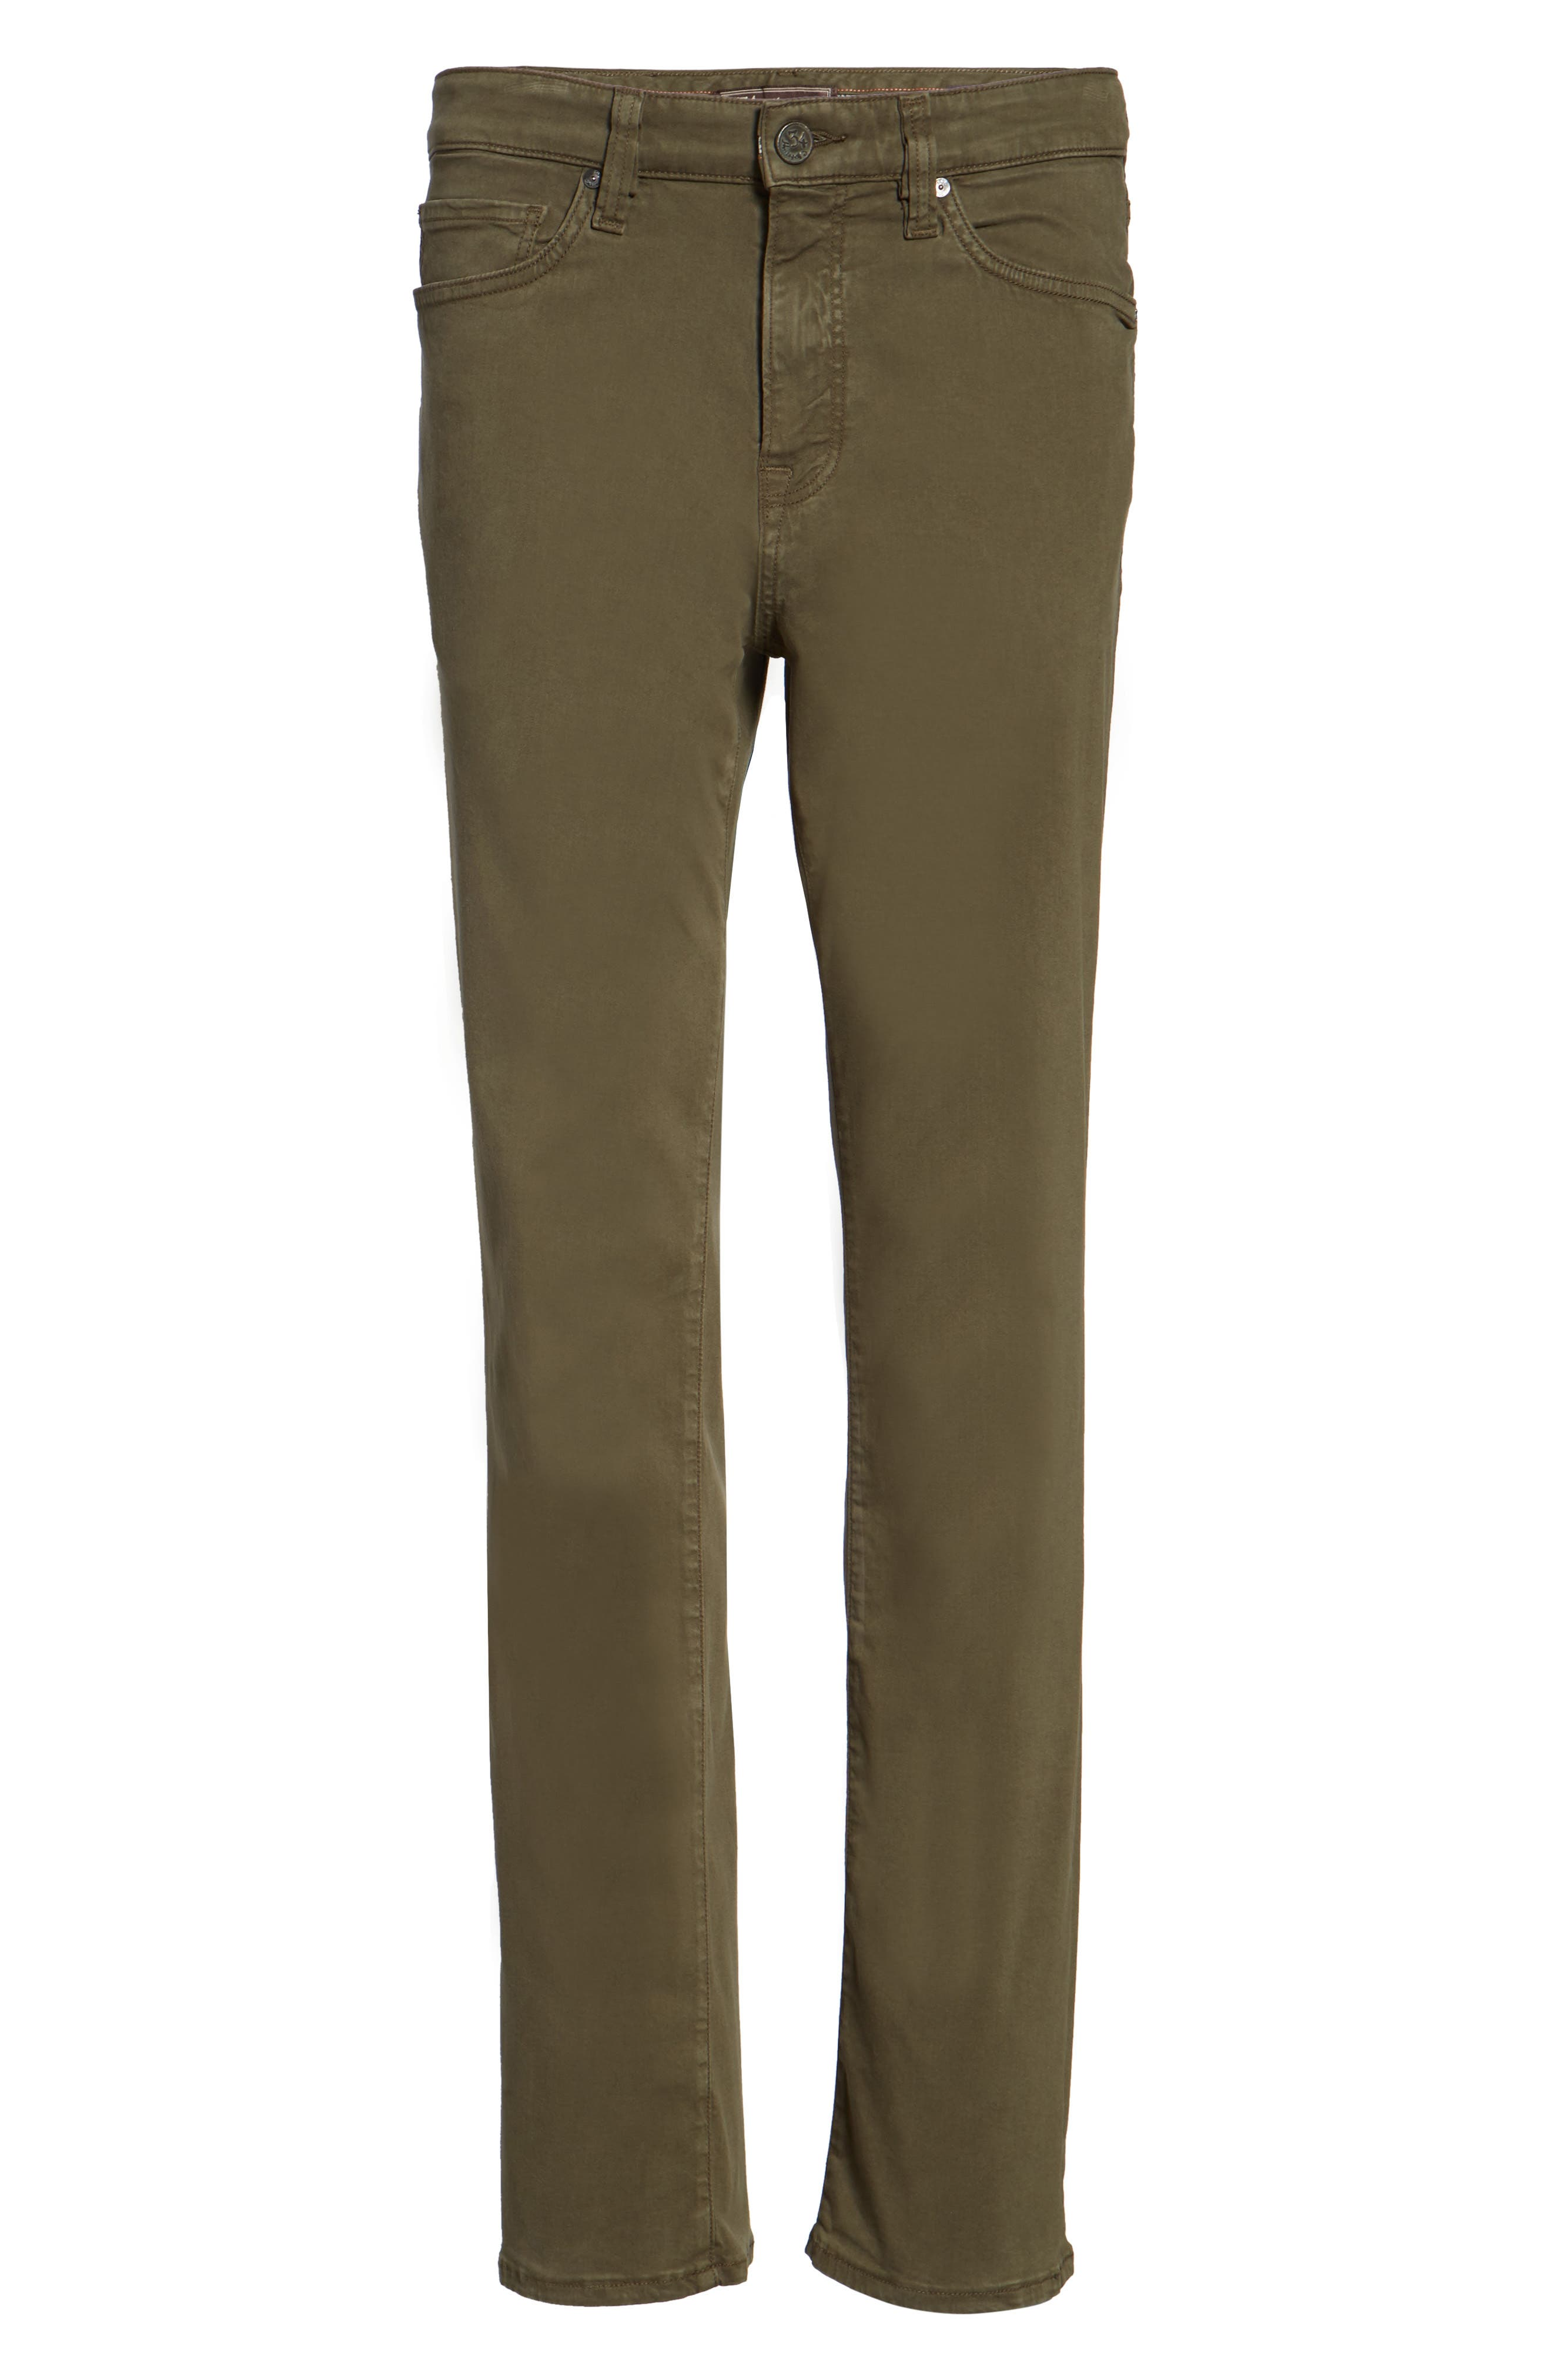 Charisma Relaxed Fit Pants,                             Alternate thumbnail 6, color,                             Olive Twill